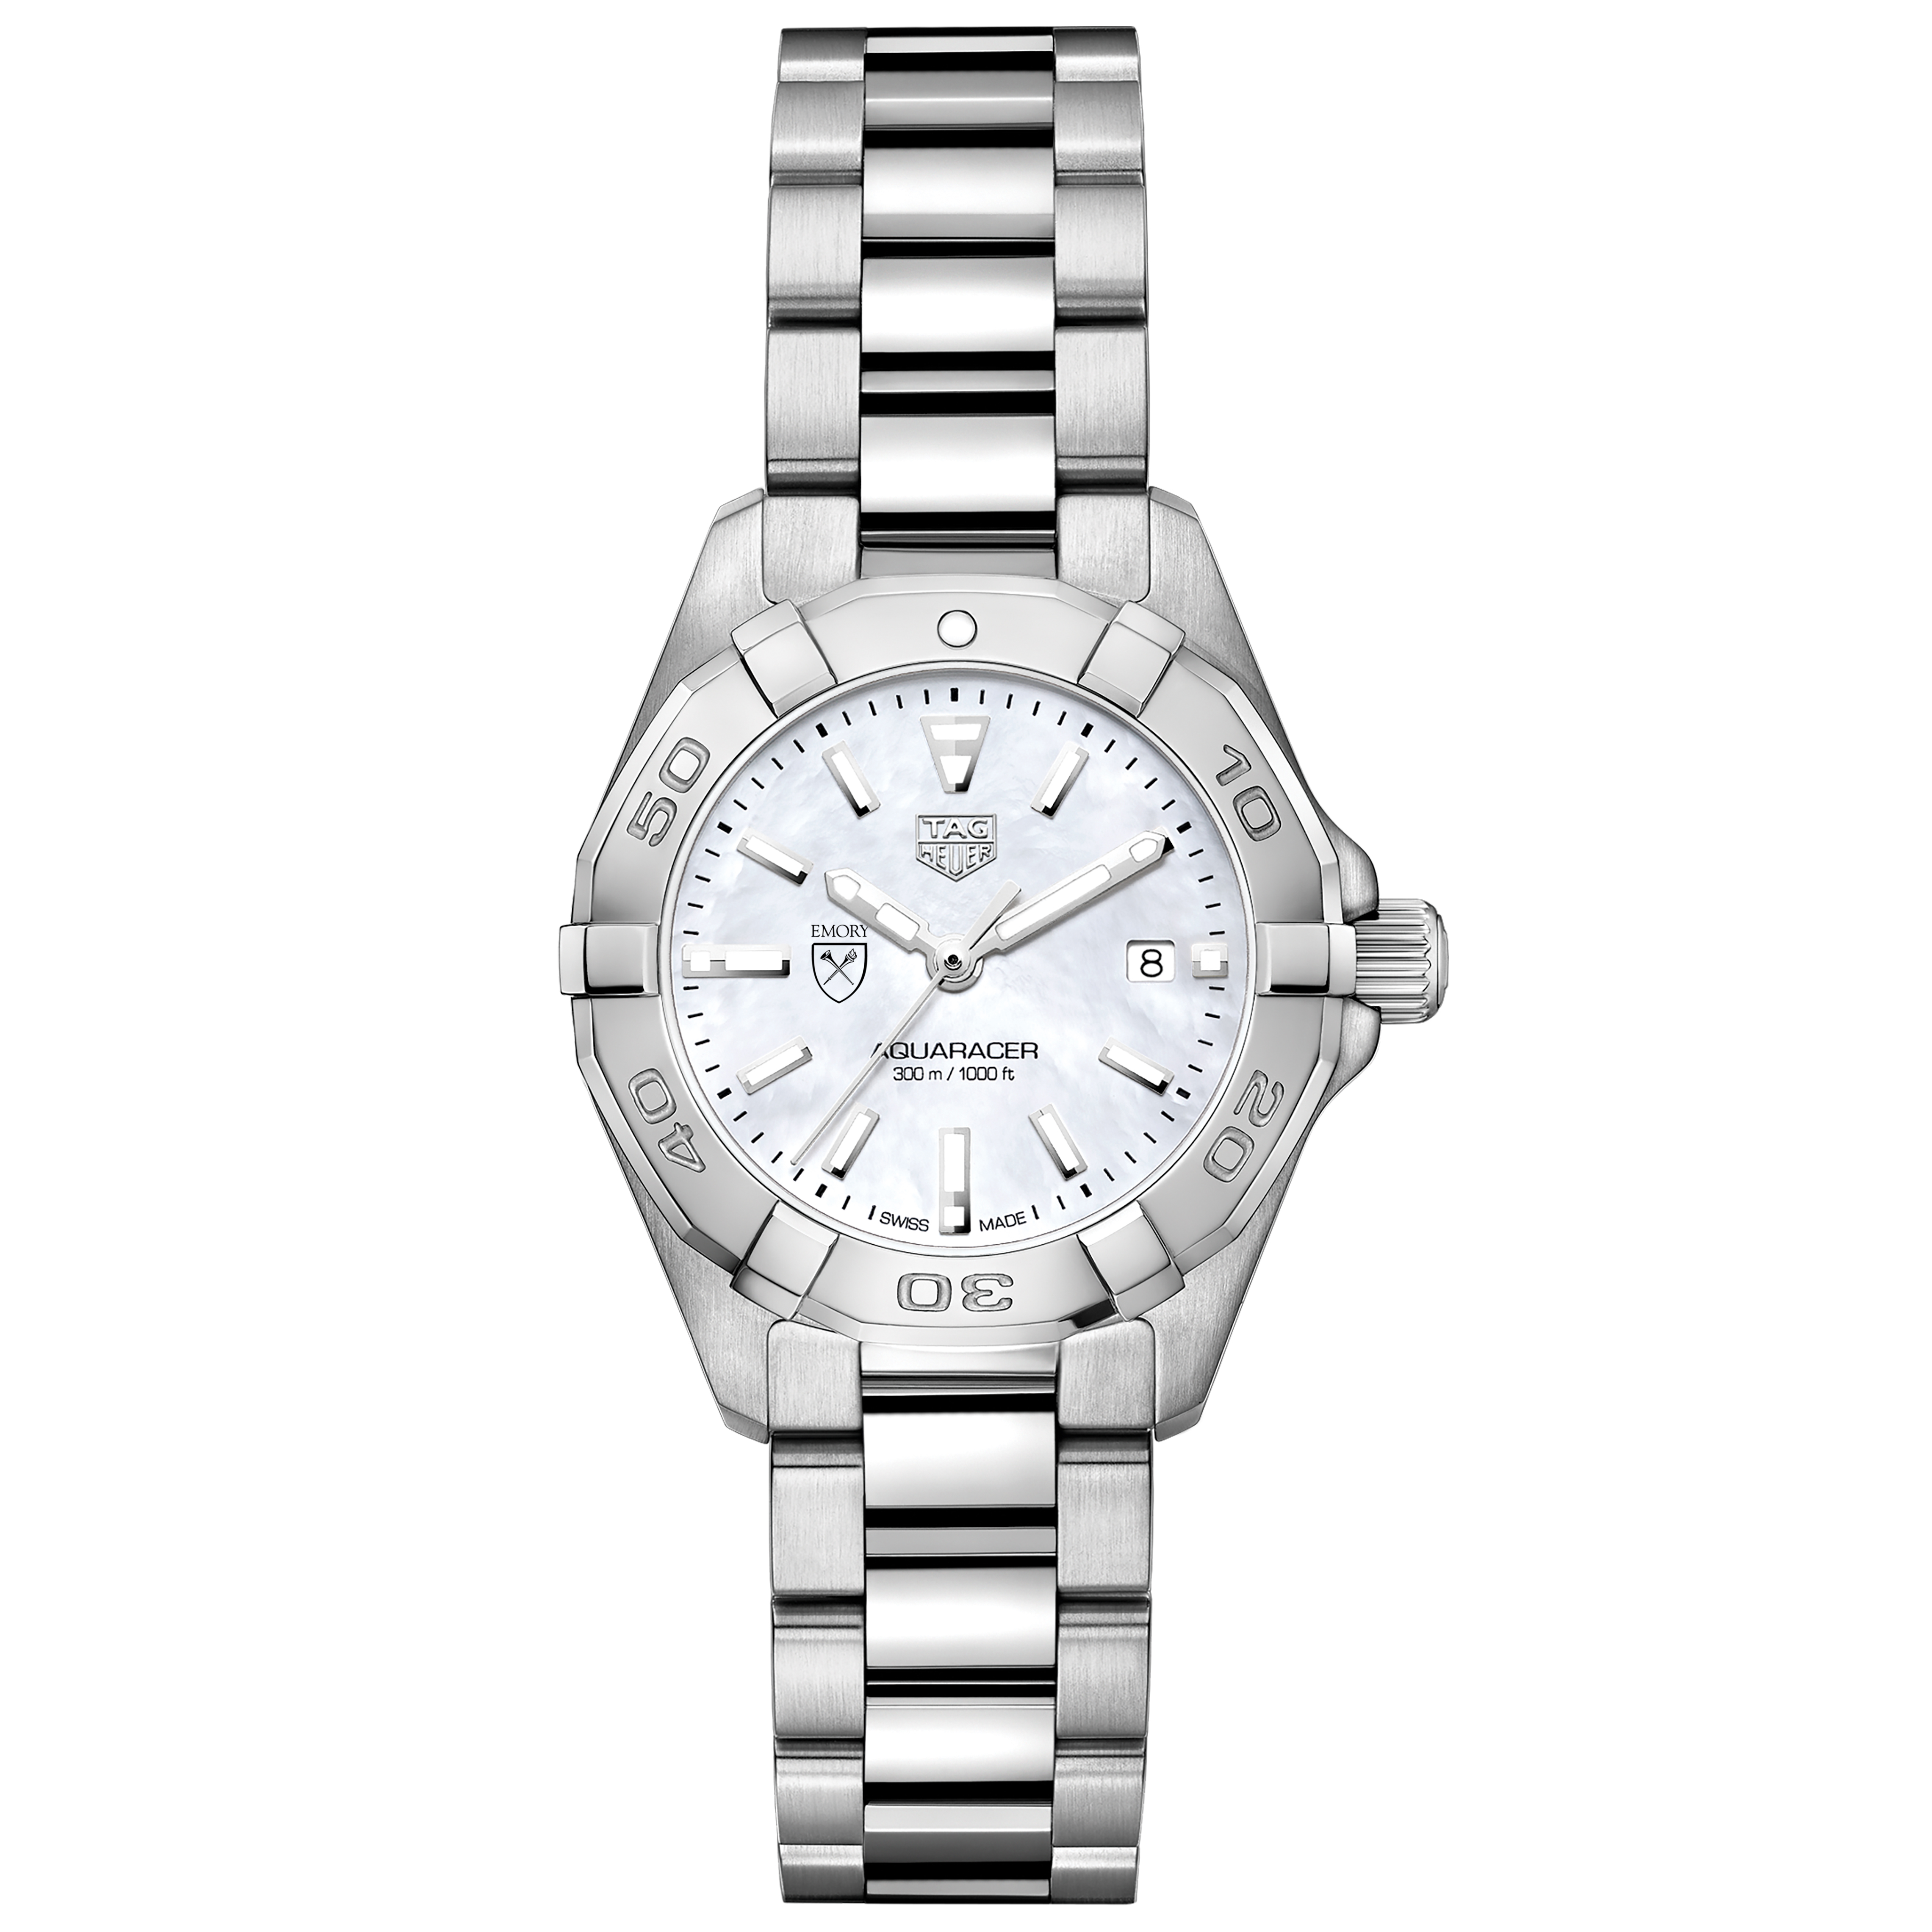 Emory Women's TAG Heuer Steel Aquaracer with MOP Dial - Image 2